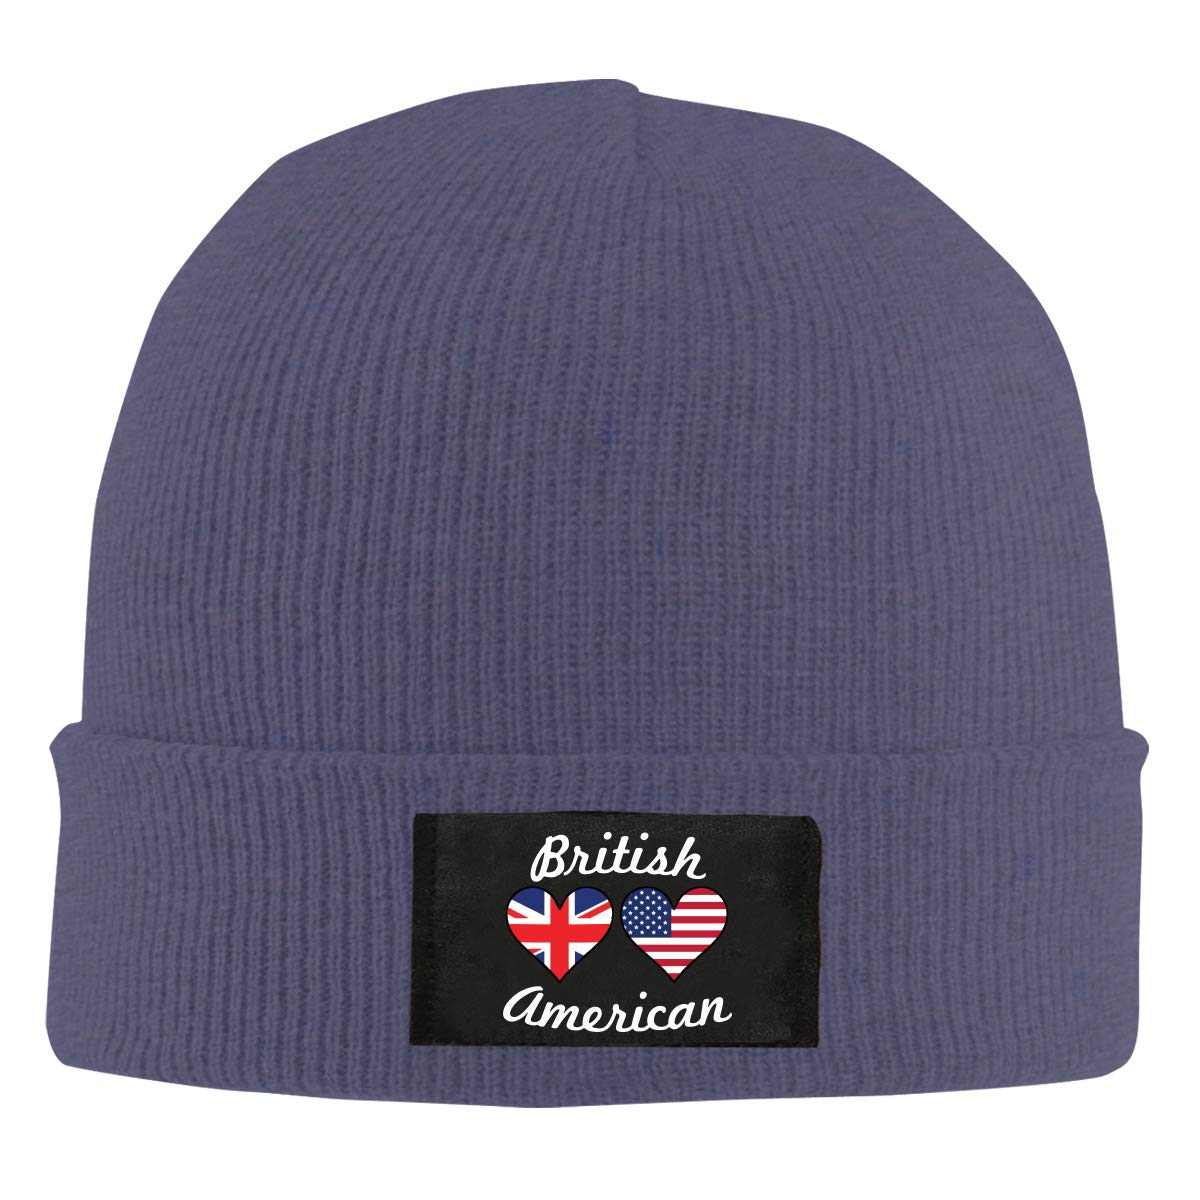 BF5Y6z/&MA Mens and Womens British American Flag Hearts Knit Cap 100/% Acrylic Comfortable Beanies Cap